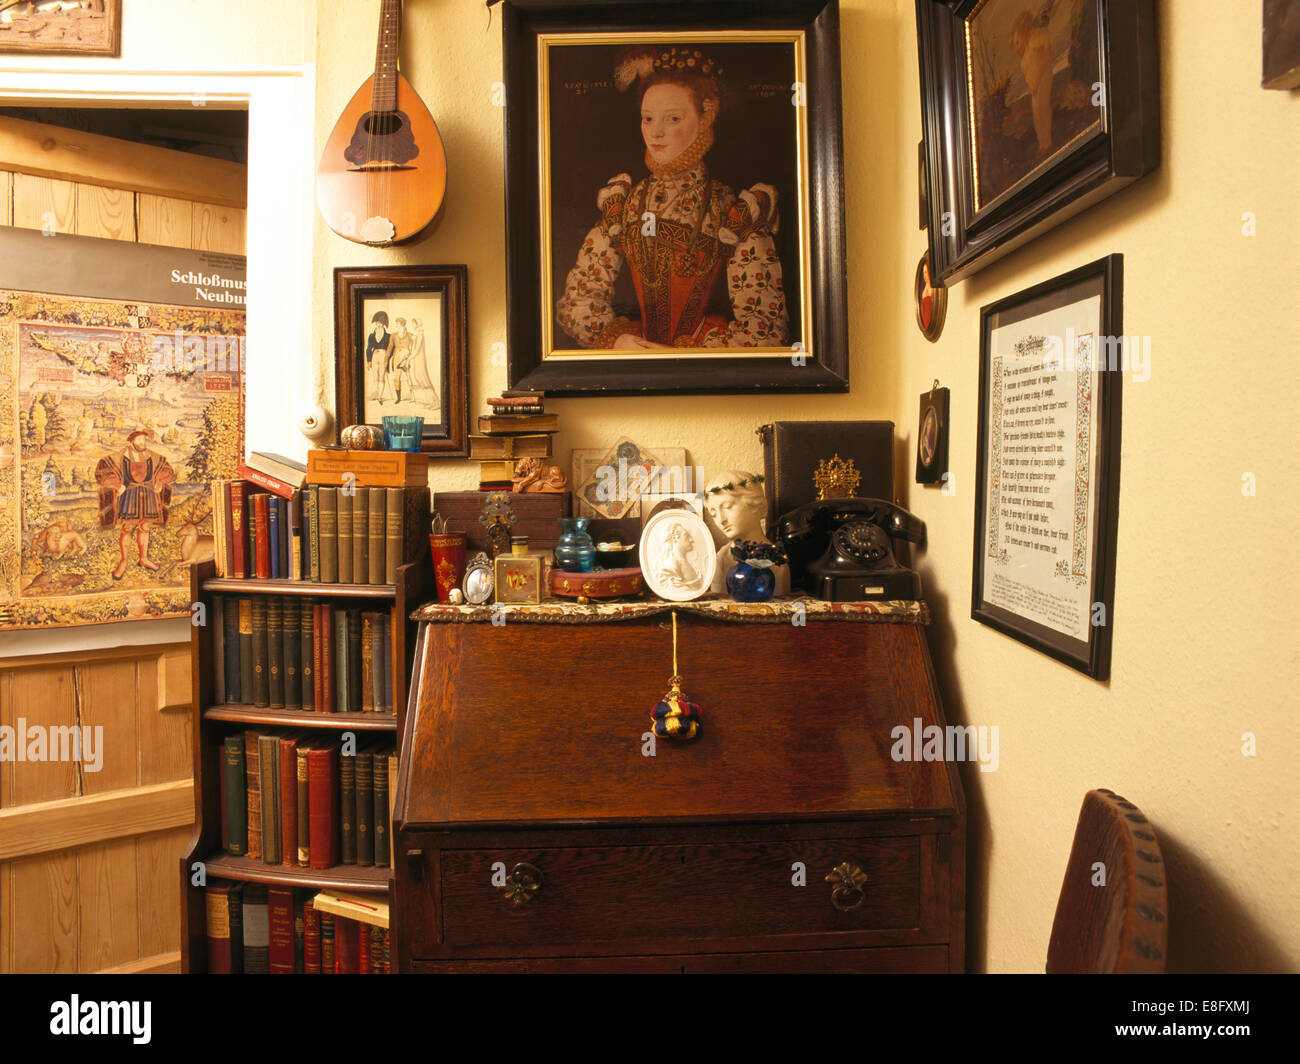 Small bookcase beside bureau with eclectic collection of objects